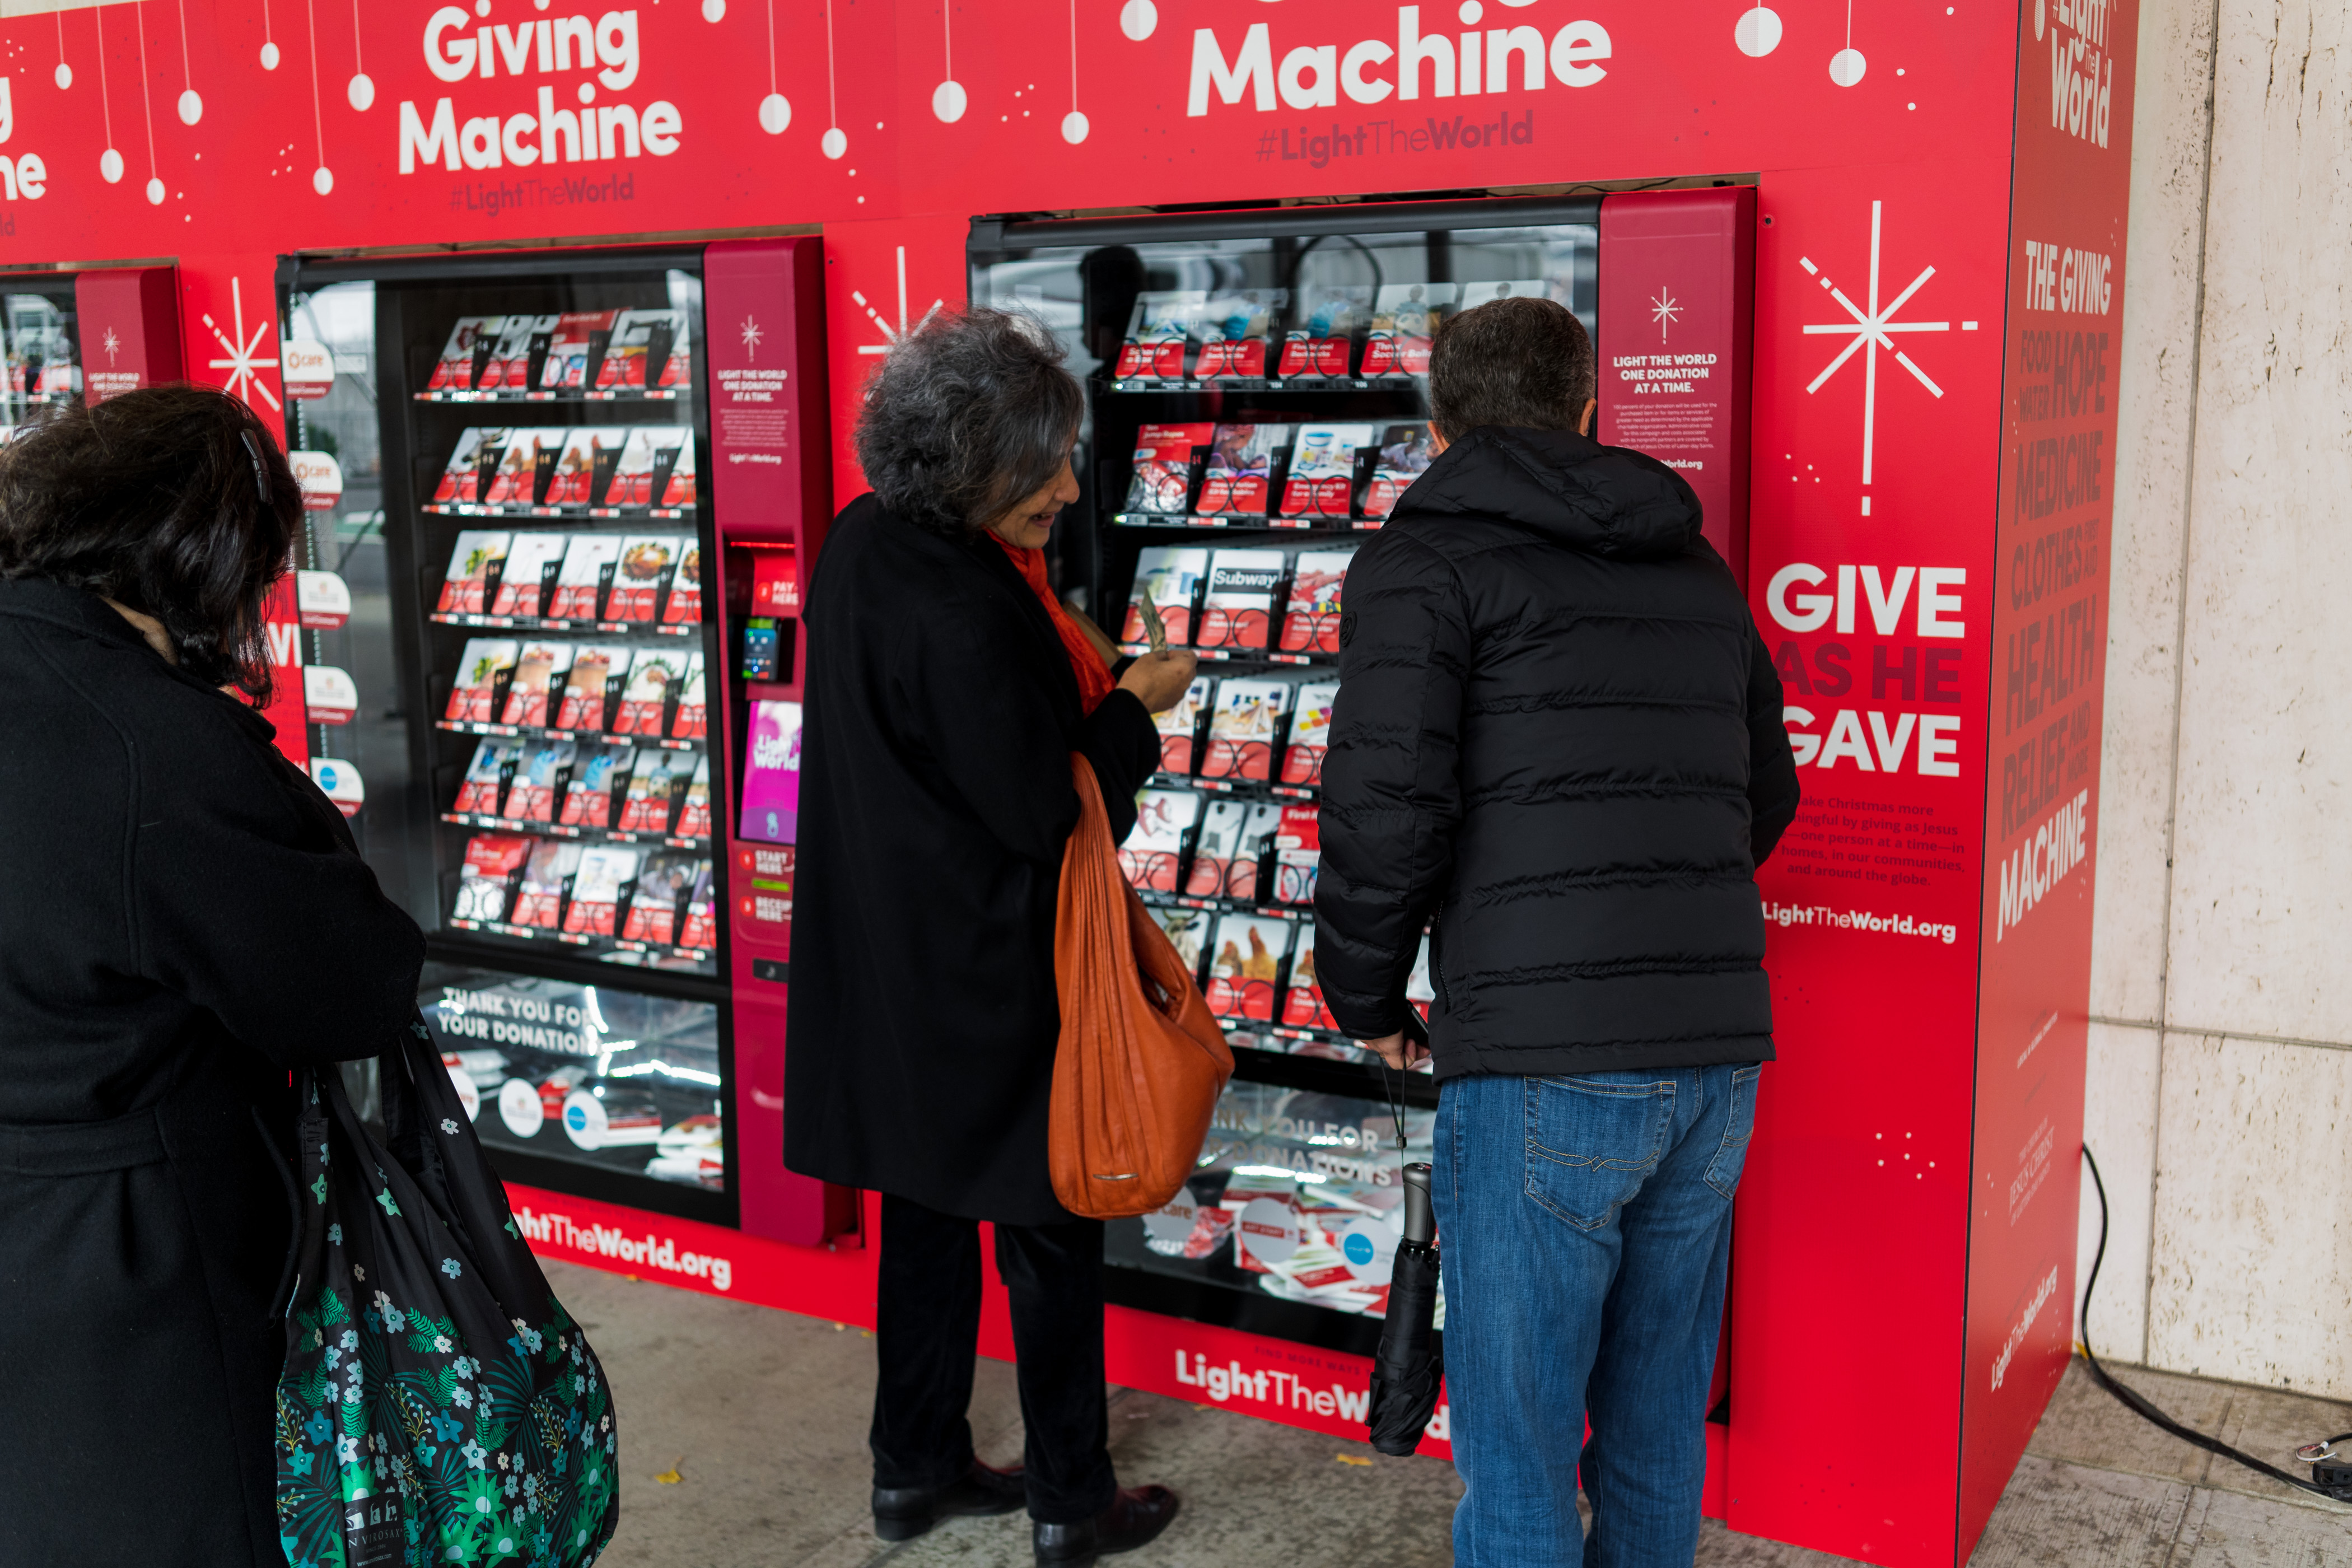 Giving Machines at Lincoln Center | WFUV